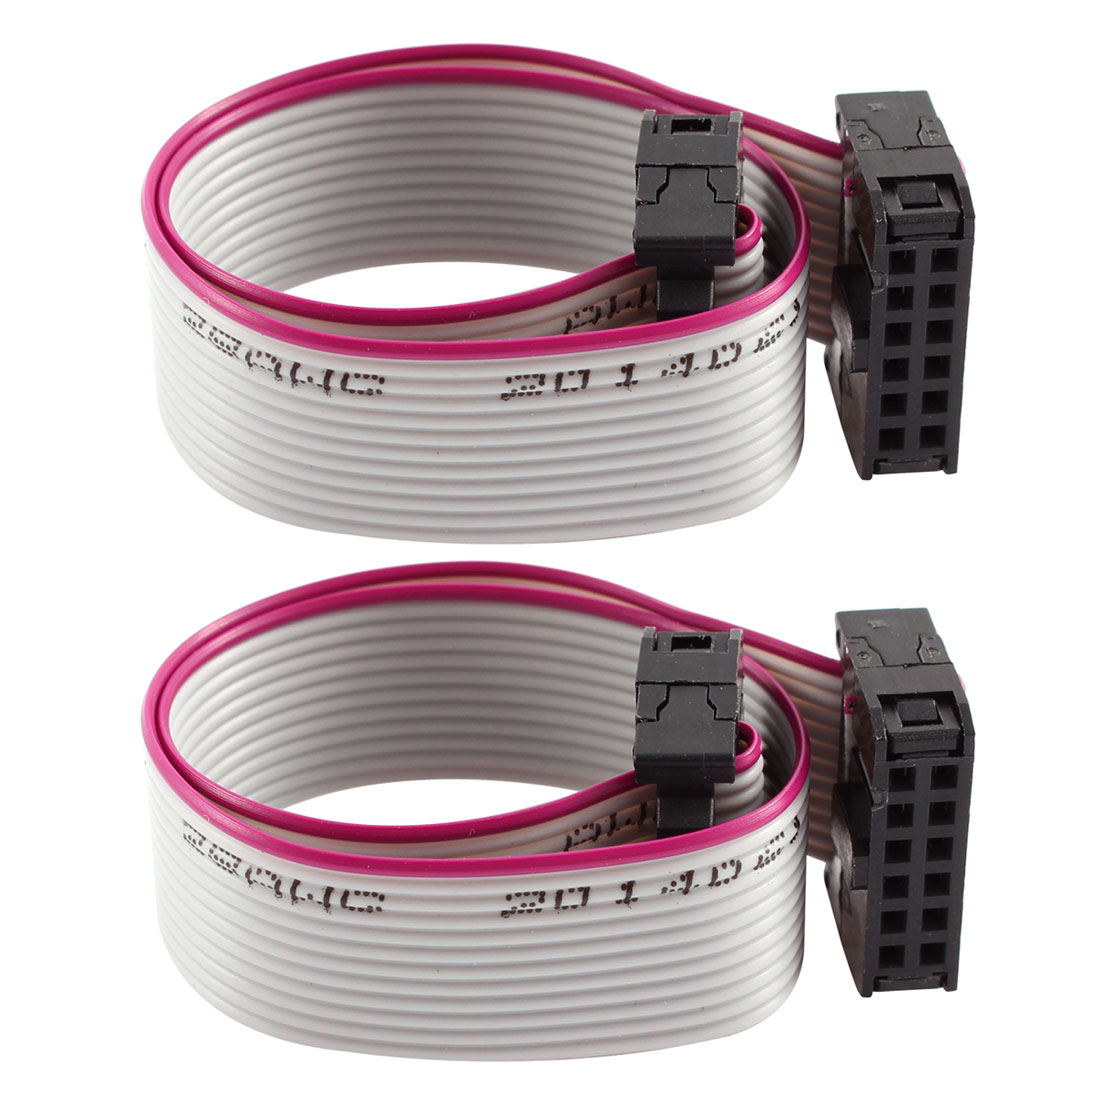 2 Pcs FC-12P IDC 12P F/F Hard Drive Data Extension Wire Flat Ribbon Cable Connector 20cm Long for Motherboard